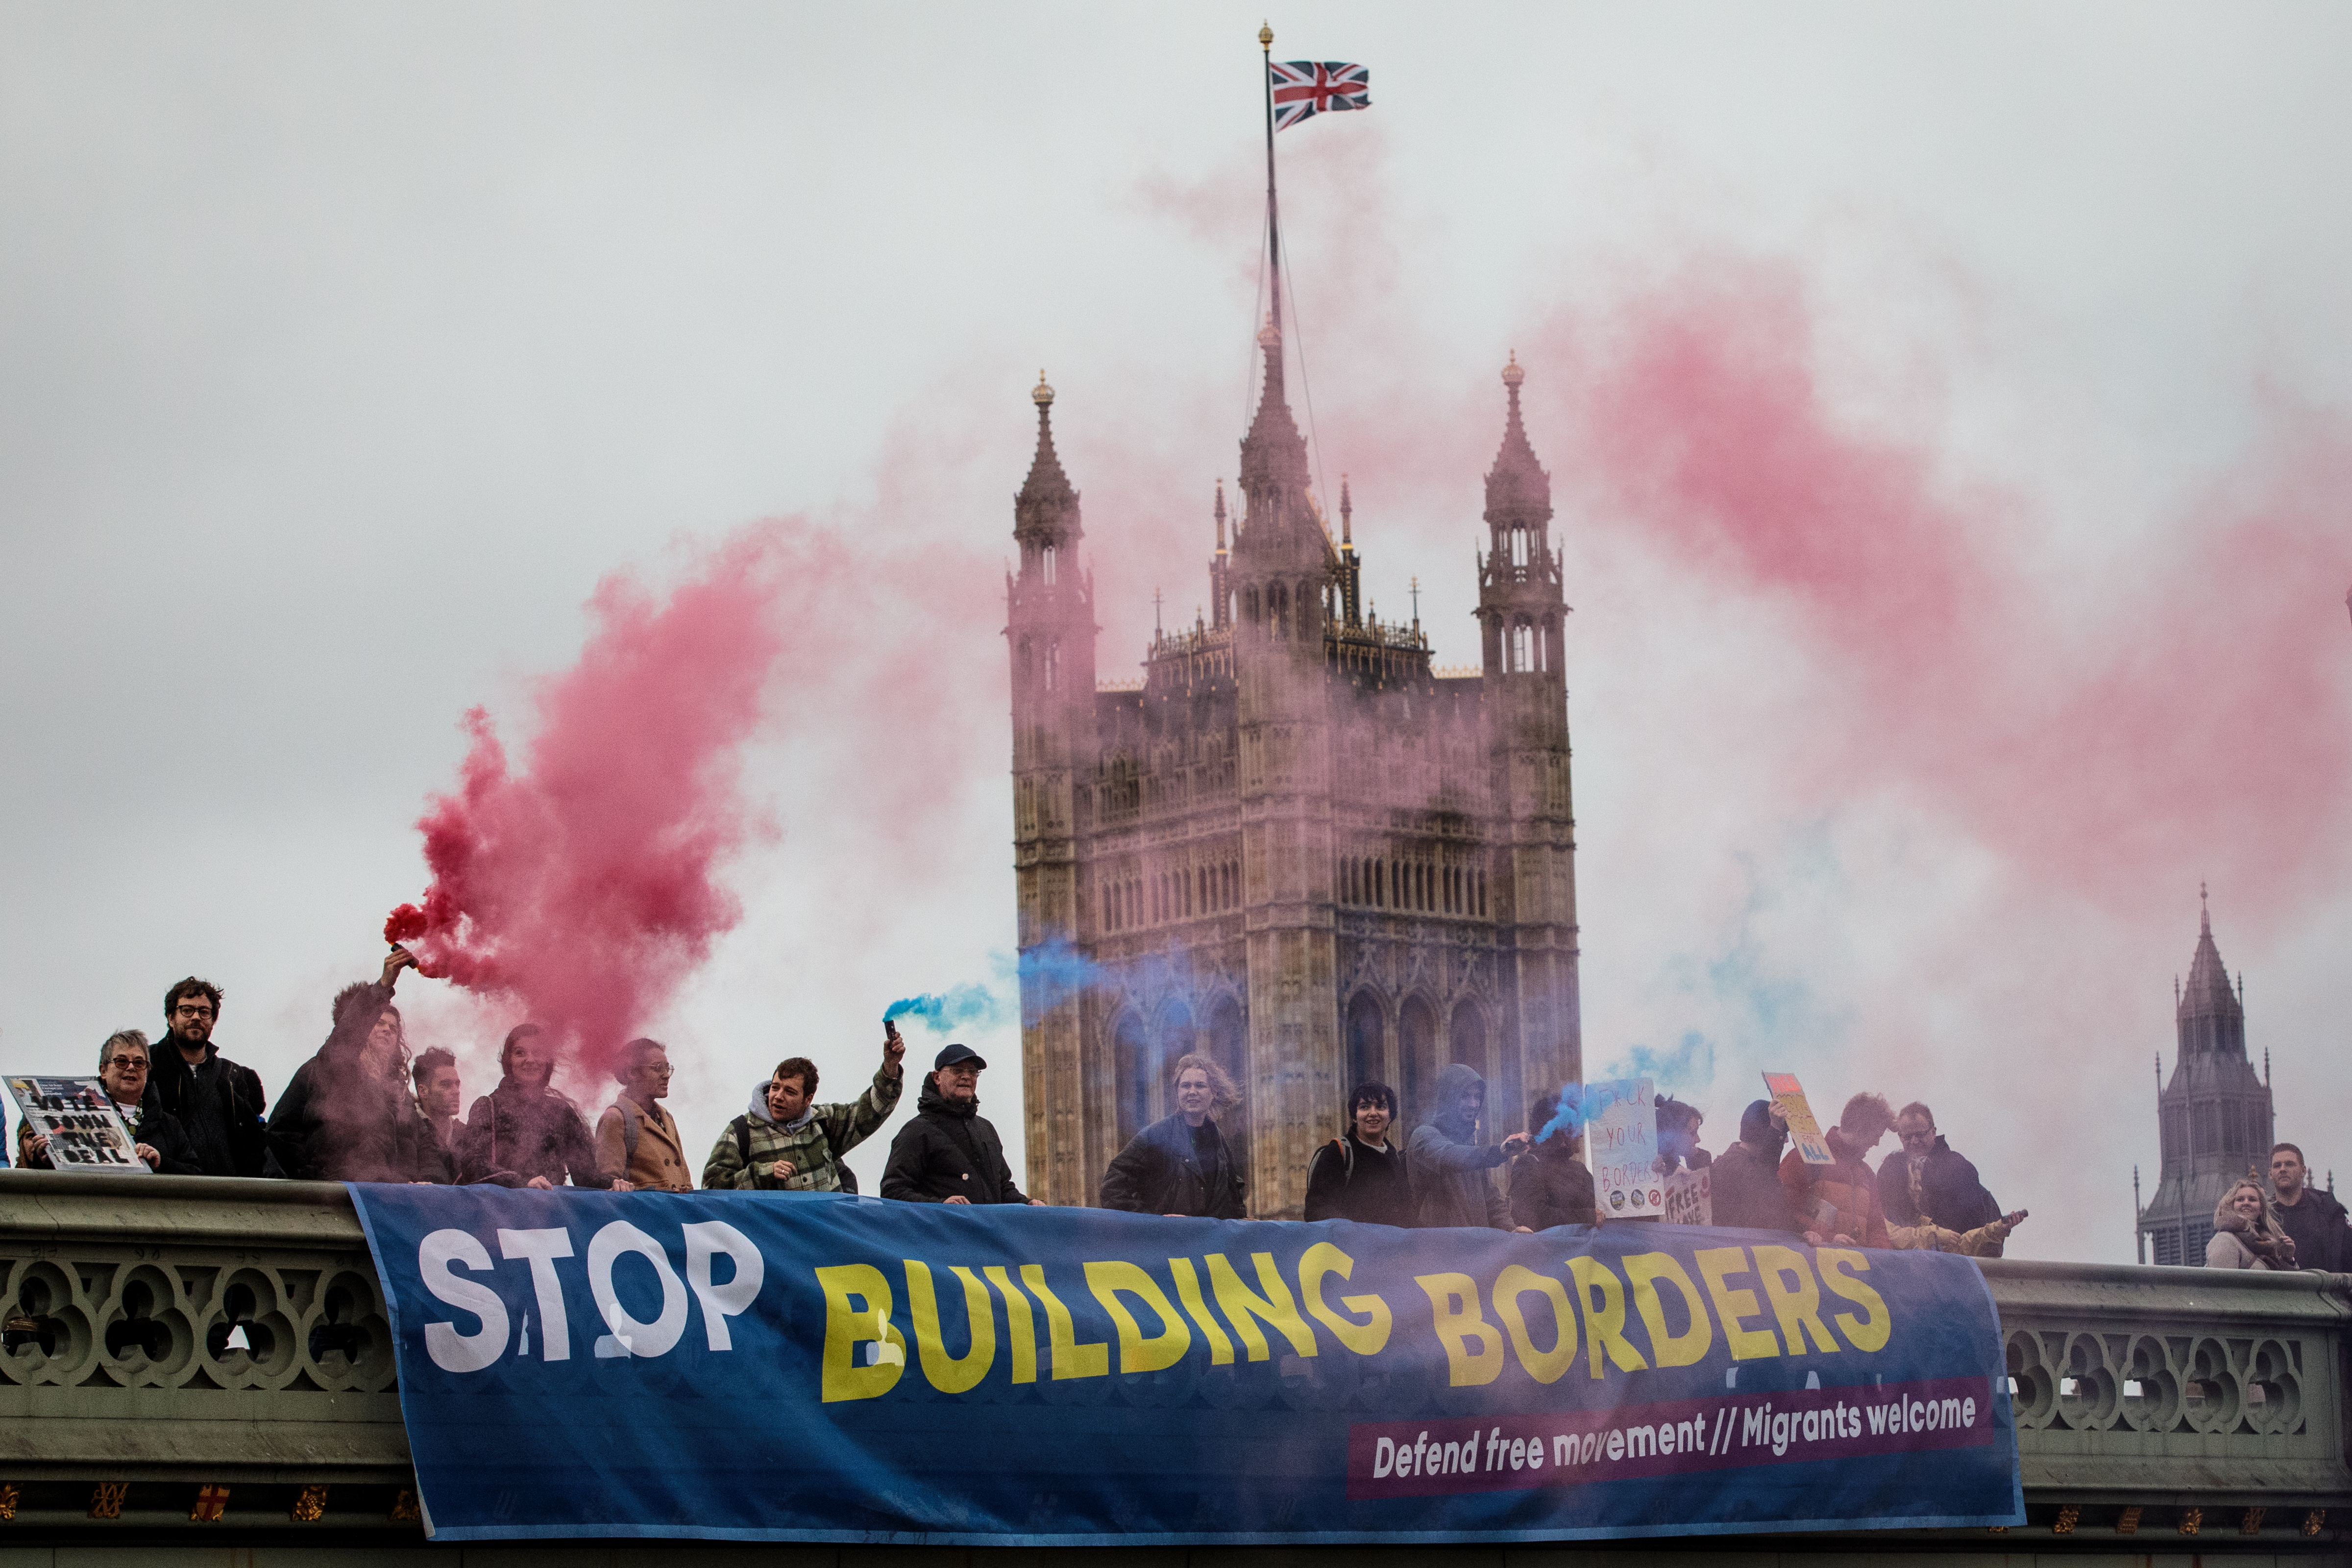 LONDON, ENGLAND - NOVEMBER 28: Activists in support of freedom of movement demonstrate against Theresa May's Brexit plan by hanging a banner from Westminster Bridge on November 28, 2018 in London, England. British Prime Minister Theresa May May will visit Scotland today as she continues her tour of the UK ahead of a crucial vote on her Brexit plan in Parliament in December. (Photo by Jack Taylor/Getty Images)